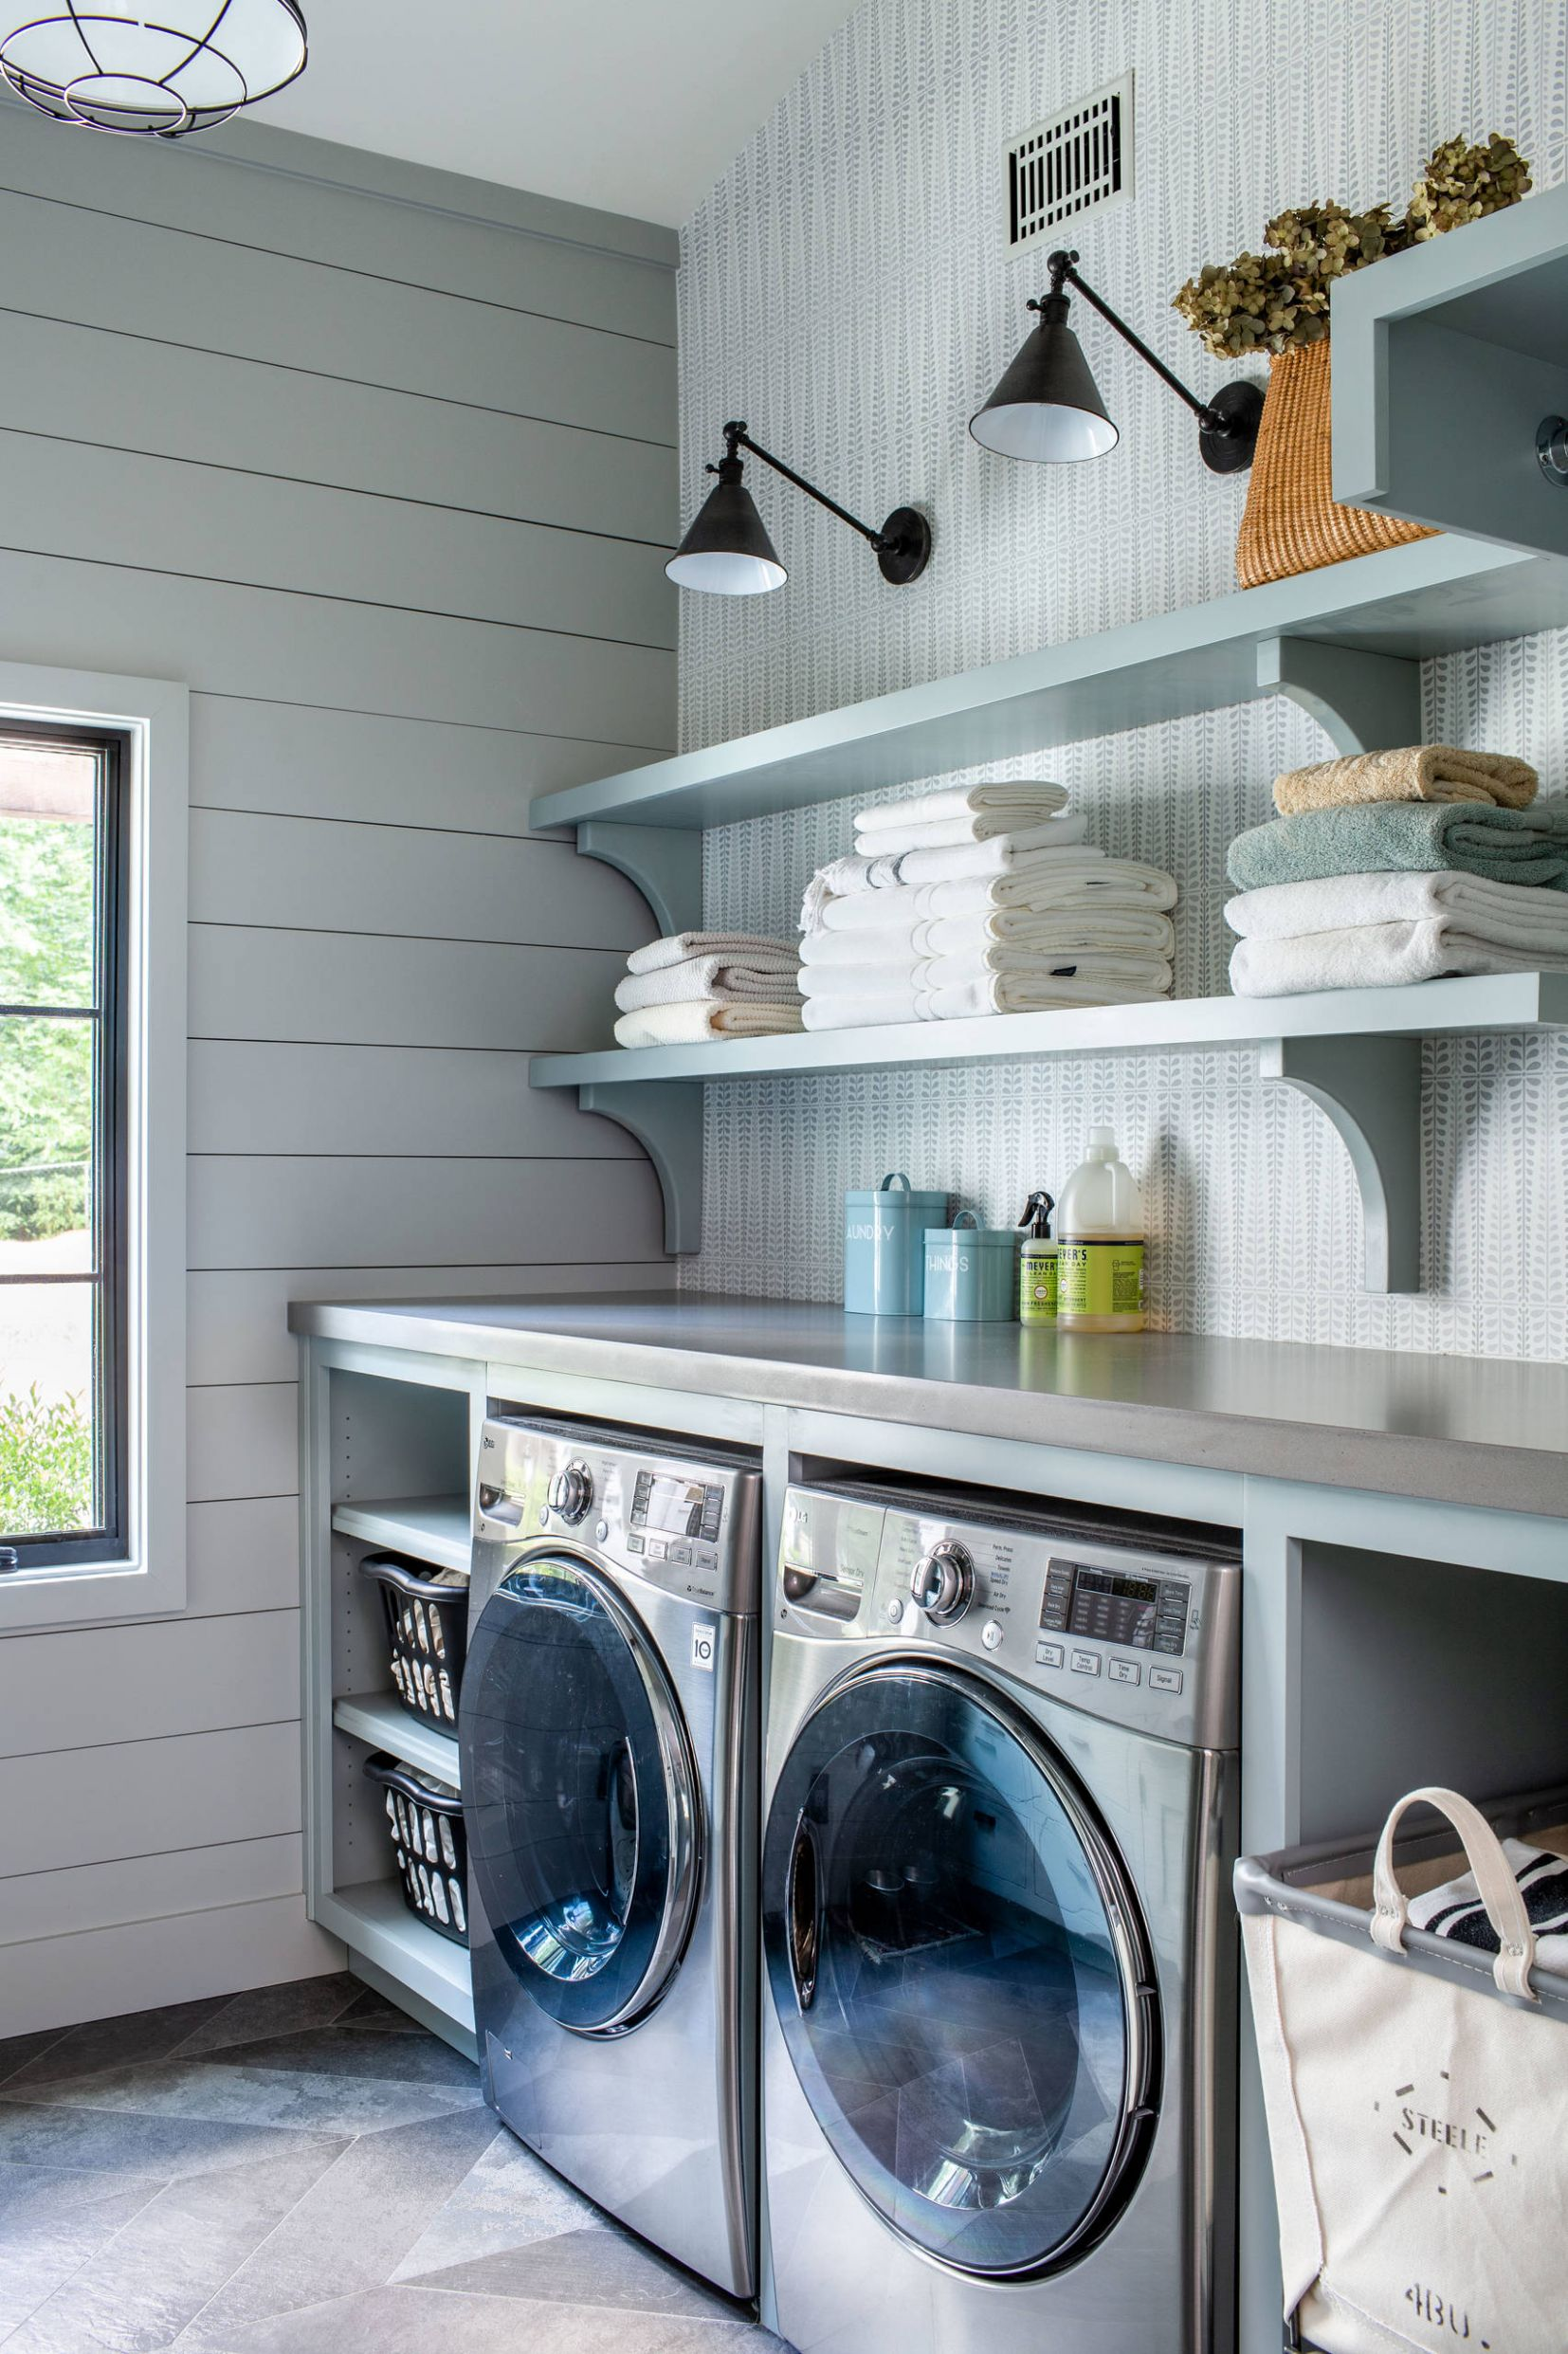 12 Beautiful Laundry Room Pictures & Ideas | Houzz